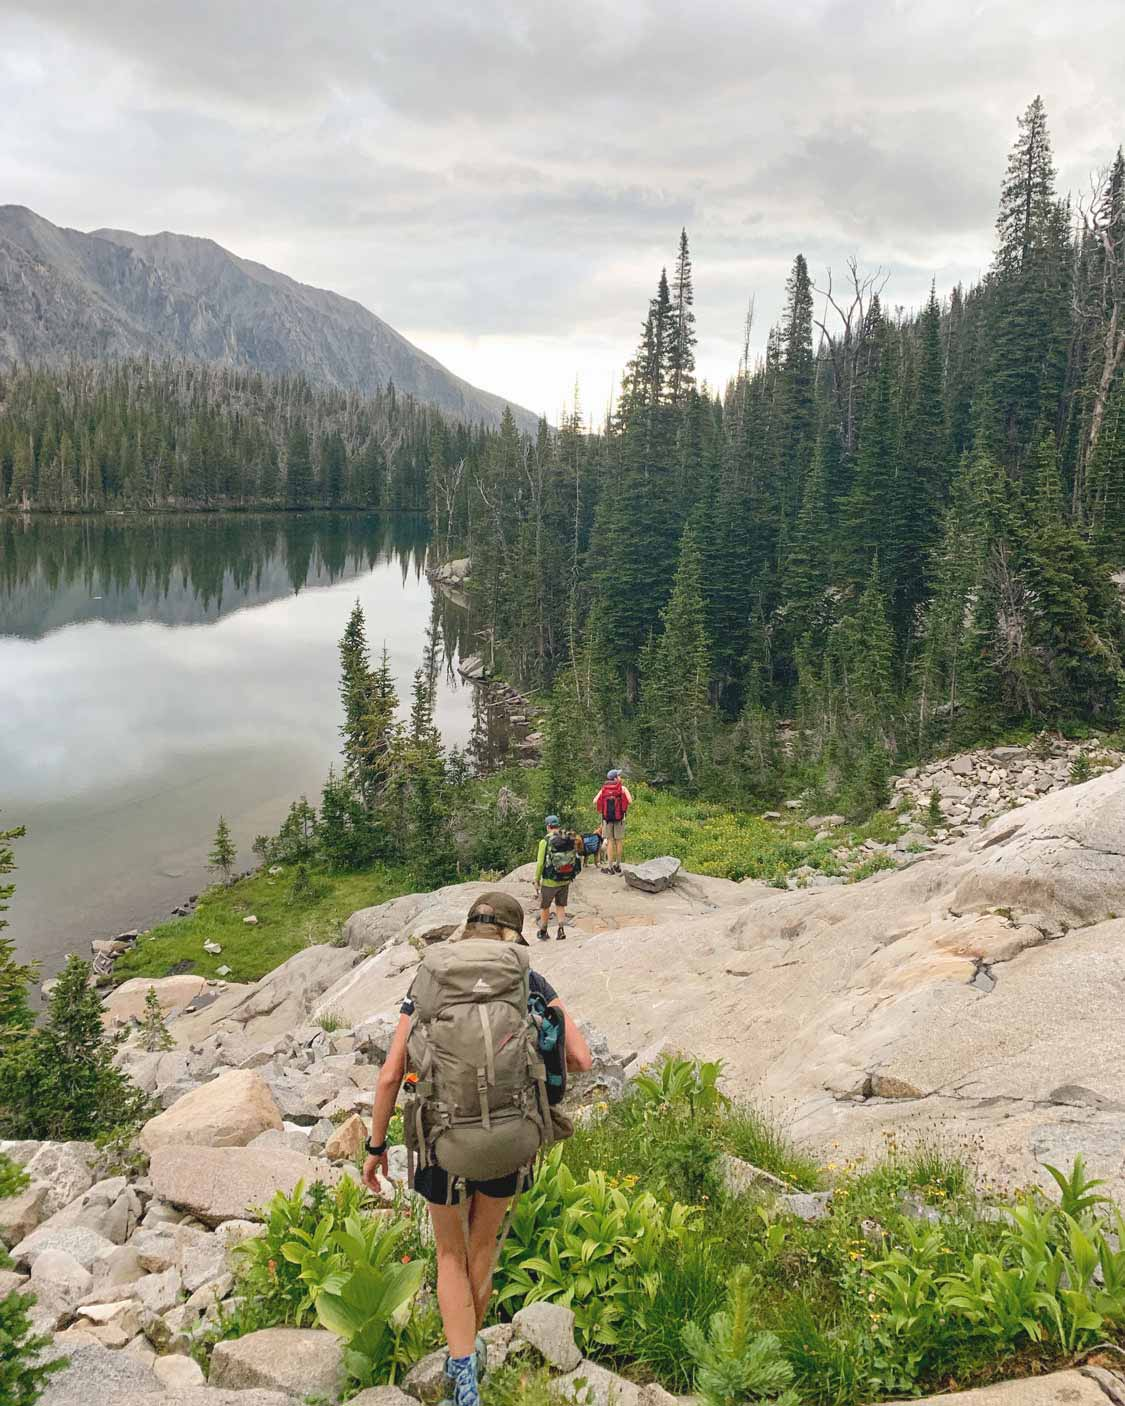 Group backpacking into an alpine lake